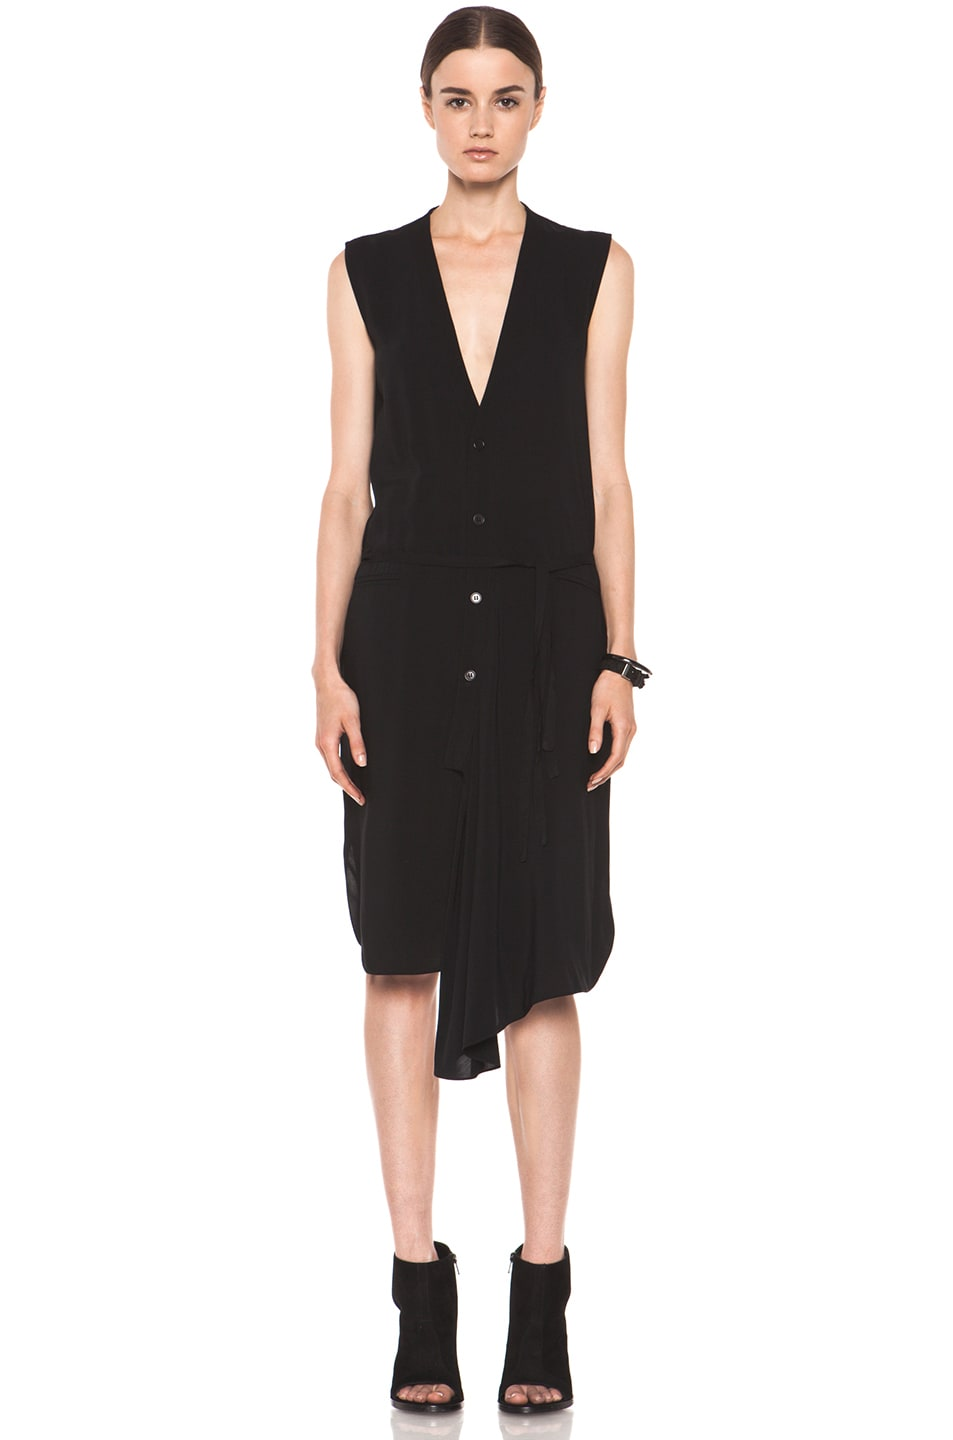 Image 1 of Tess Giberson Asymmetric Shirt Dress in Black